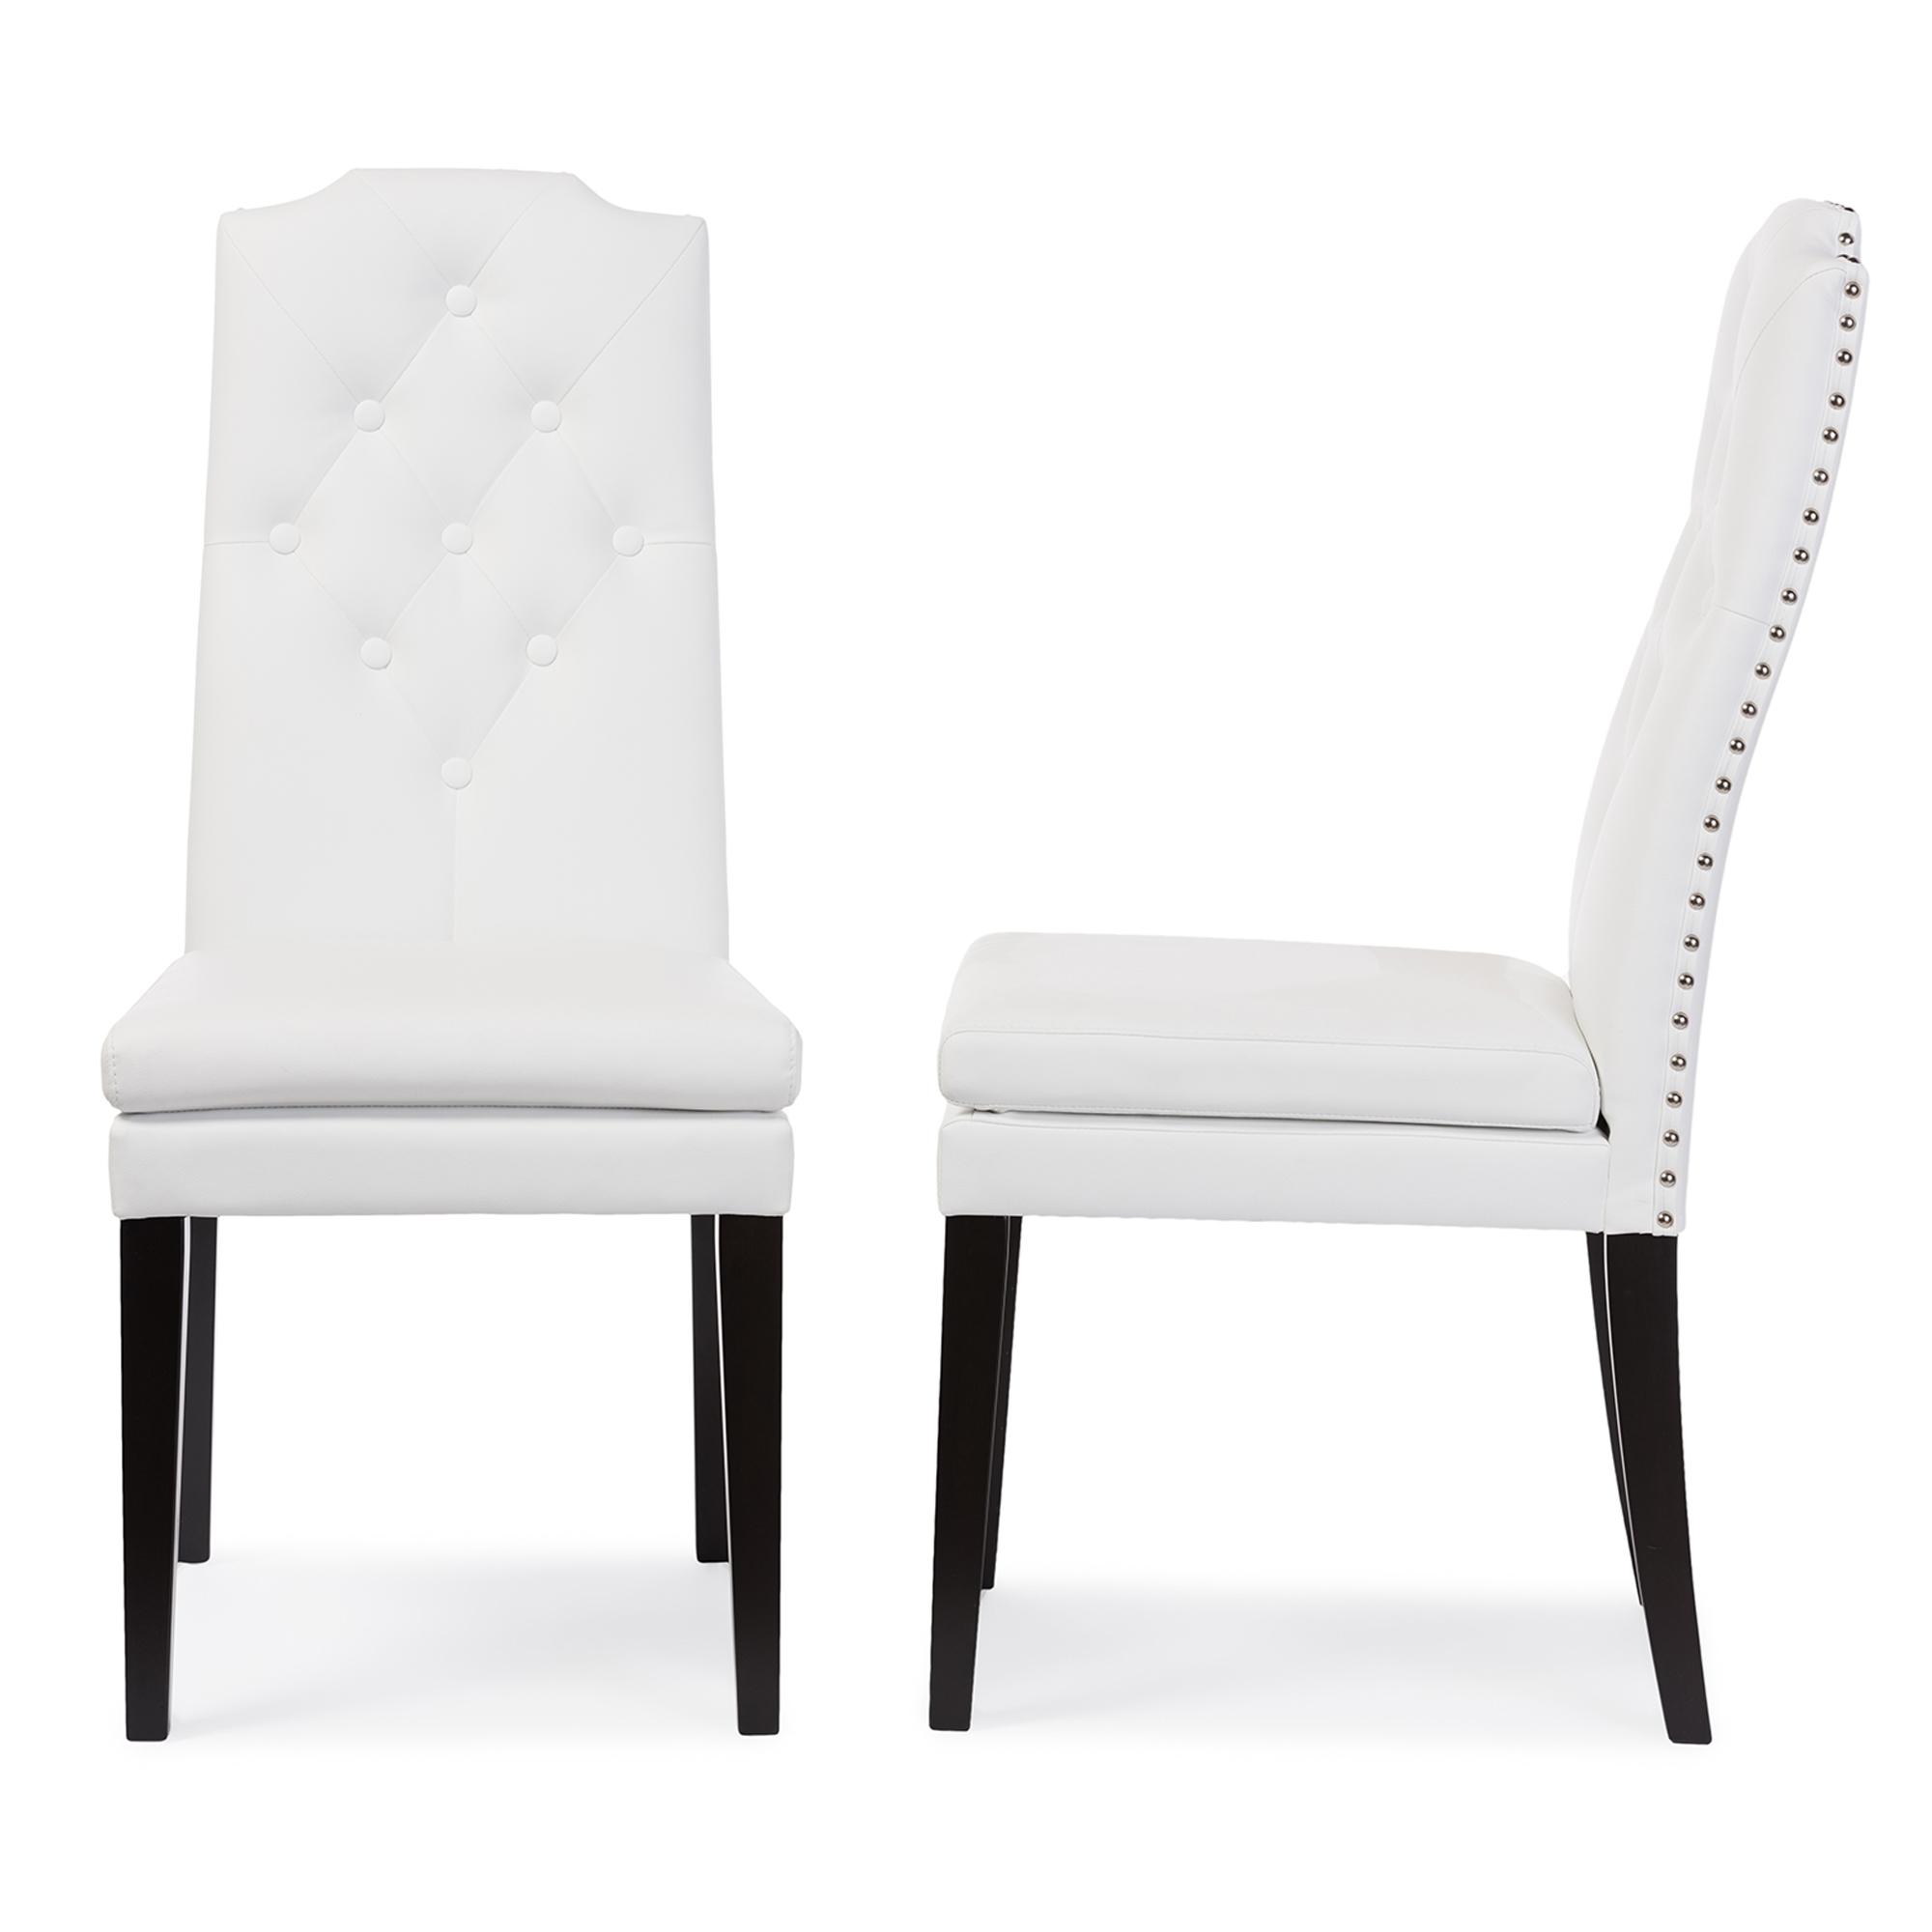 Amazing Baxton Studio Dylin Modern And Contemporary White Faux Leather  Button Tufted Nail Heads Trim Dining Chair